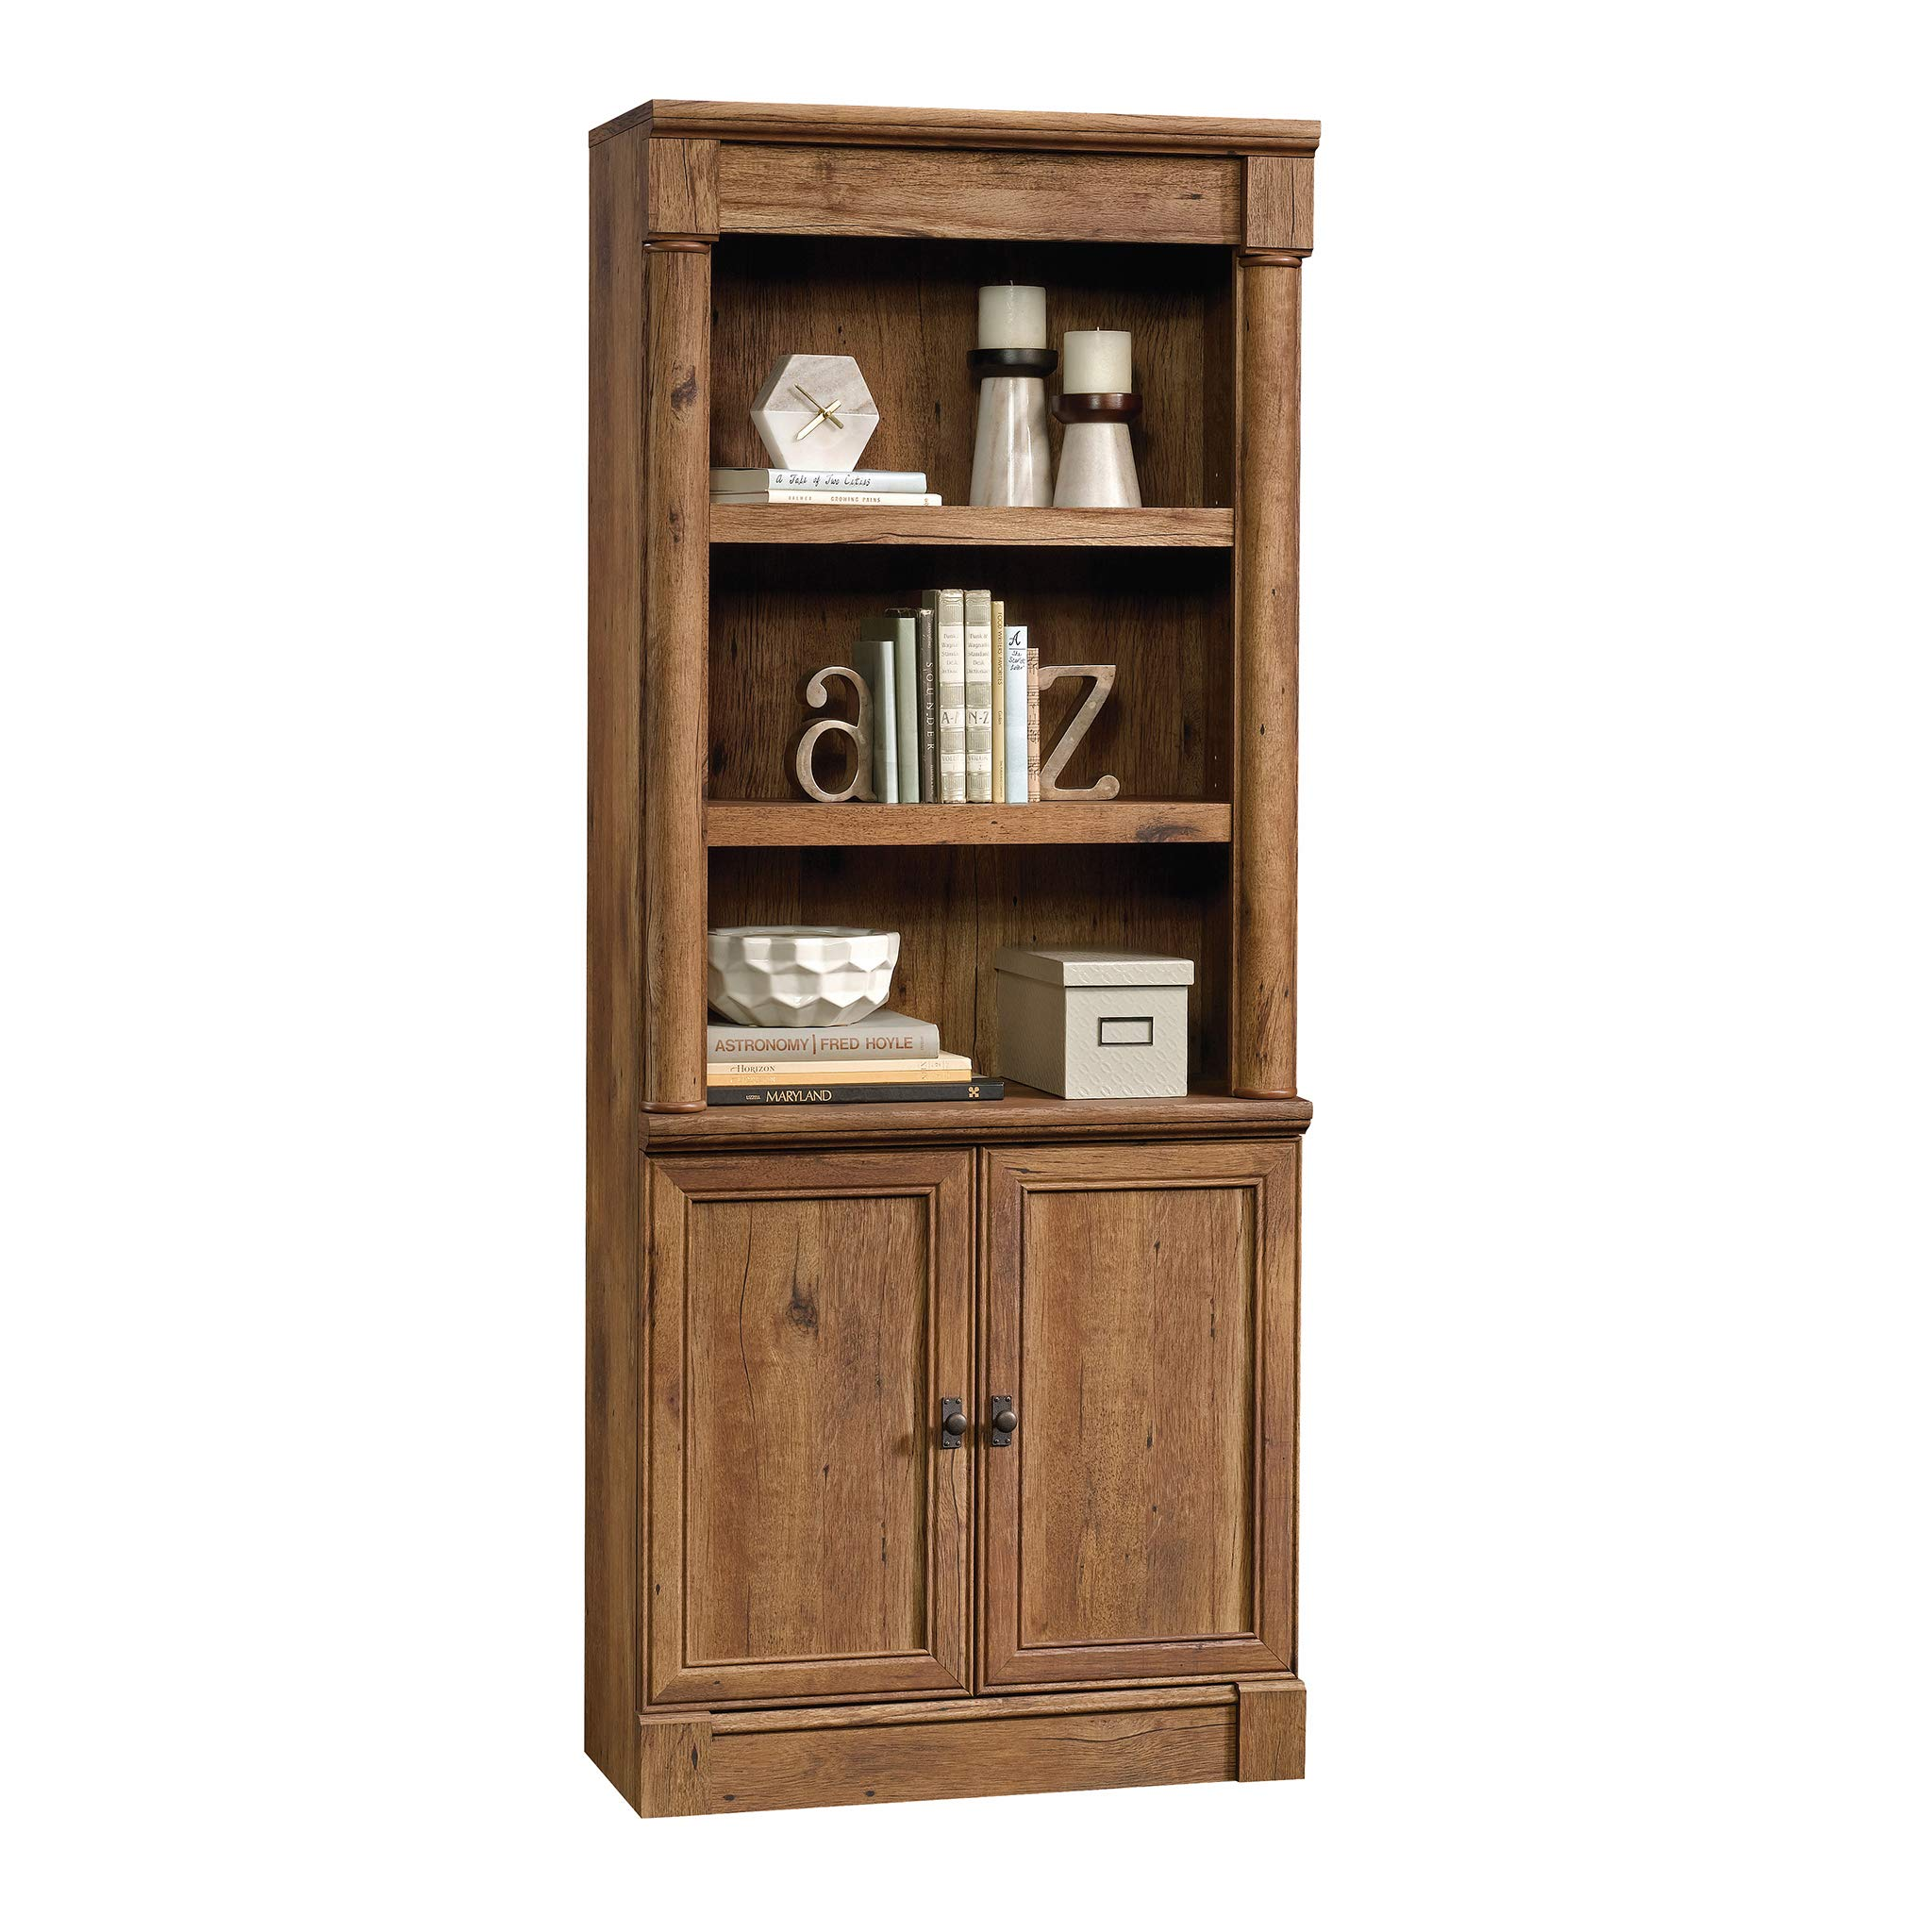 Sauder 420609 Palladia Library with Doors, L: 29.37'' x W: 13.90'' x H: 71.85'', Vintage Oak finish by Sauder (Image #11)